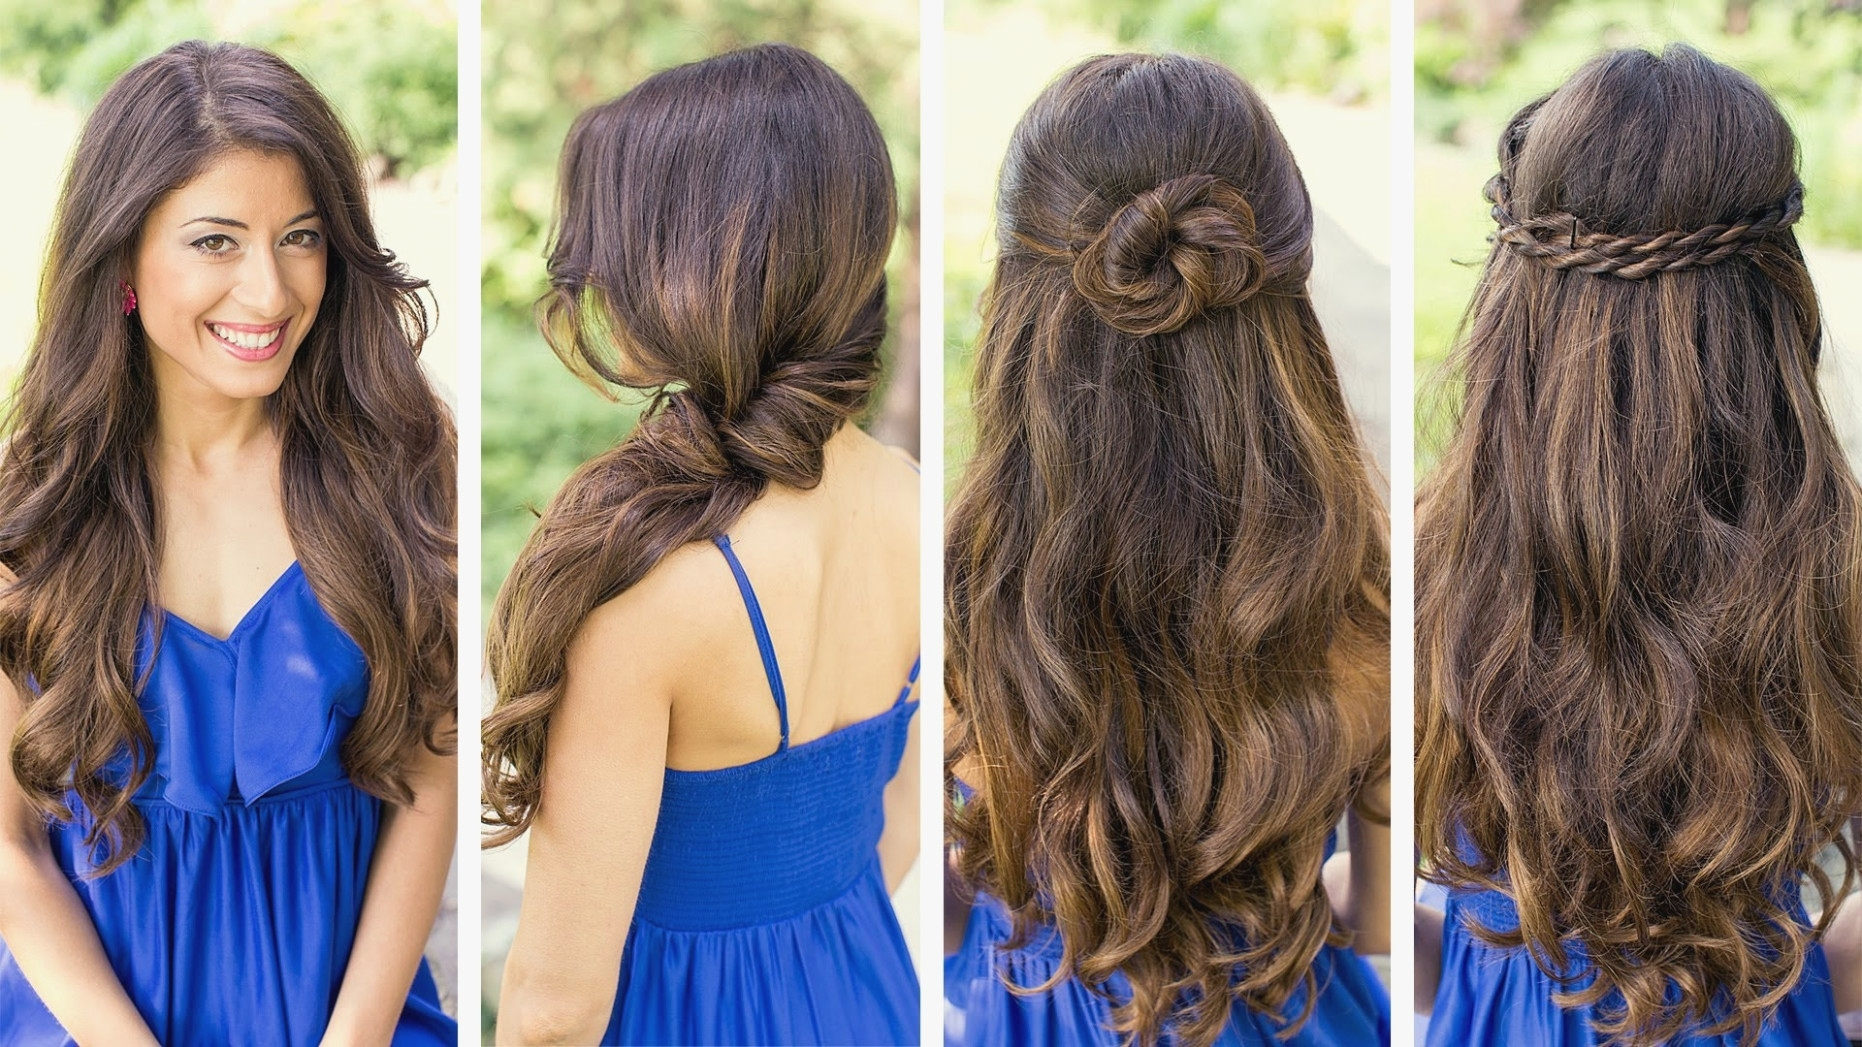 Maxresdefault   Medium Hair Styles Ideas - 10 - Hairstyle For Curly within Haircut For Curly Rough Hair